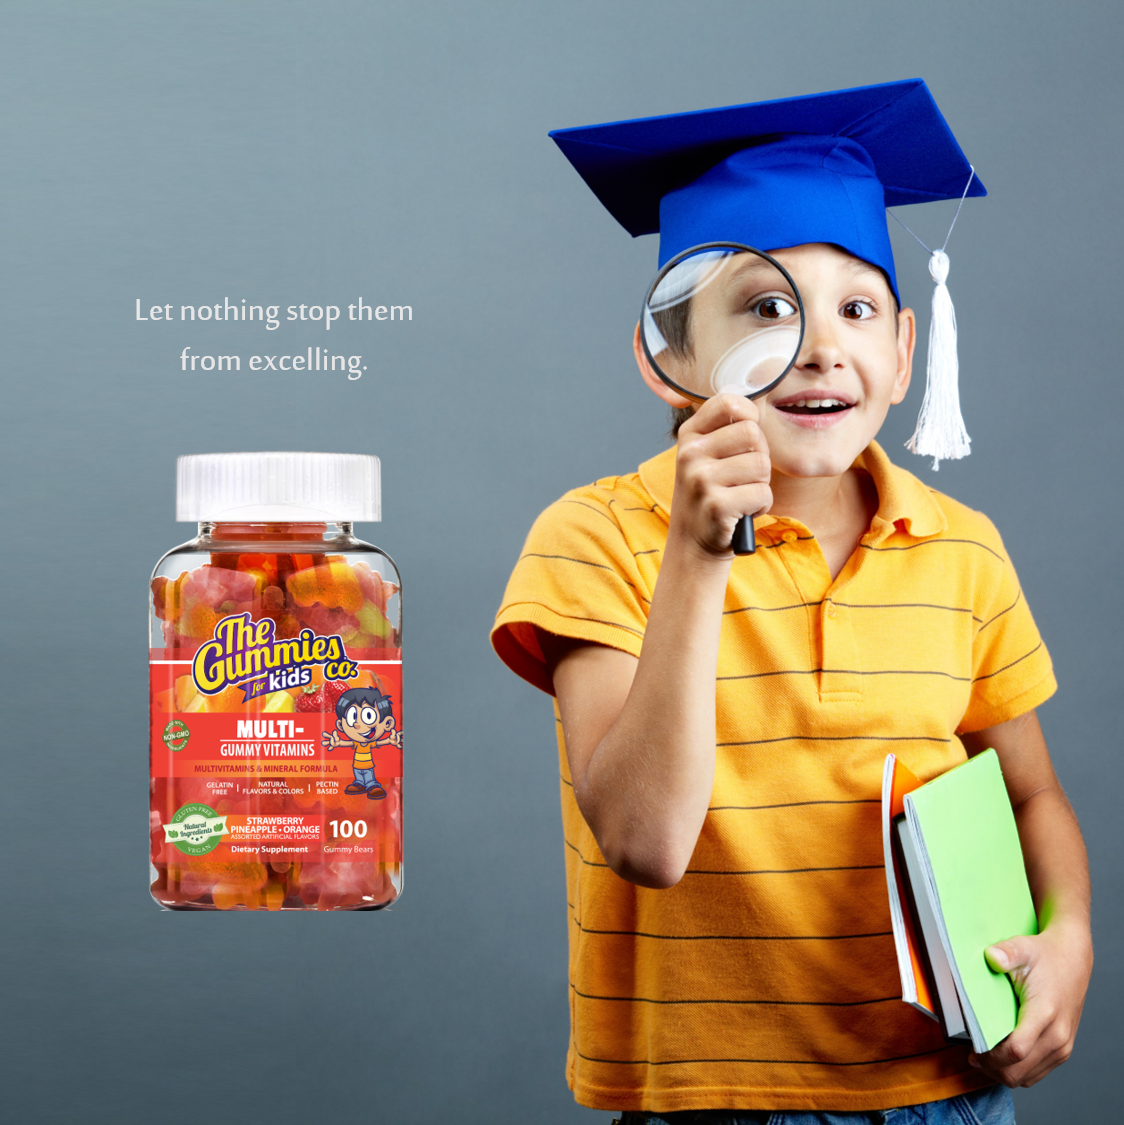 The Gummies Co Multivitamins For Kids Helps Improve Absorption Of Daily Nutrients For Optimum Health And Also Acts As Vitamins For Kids Gummy Vitamins Gummies